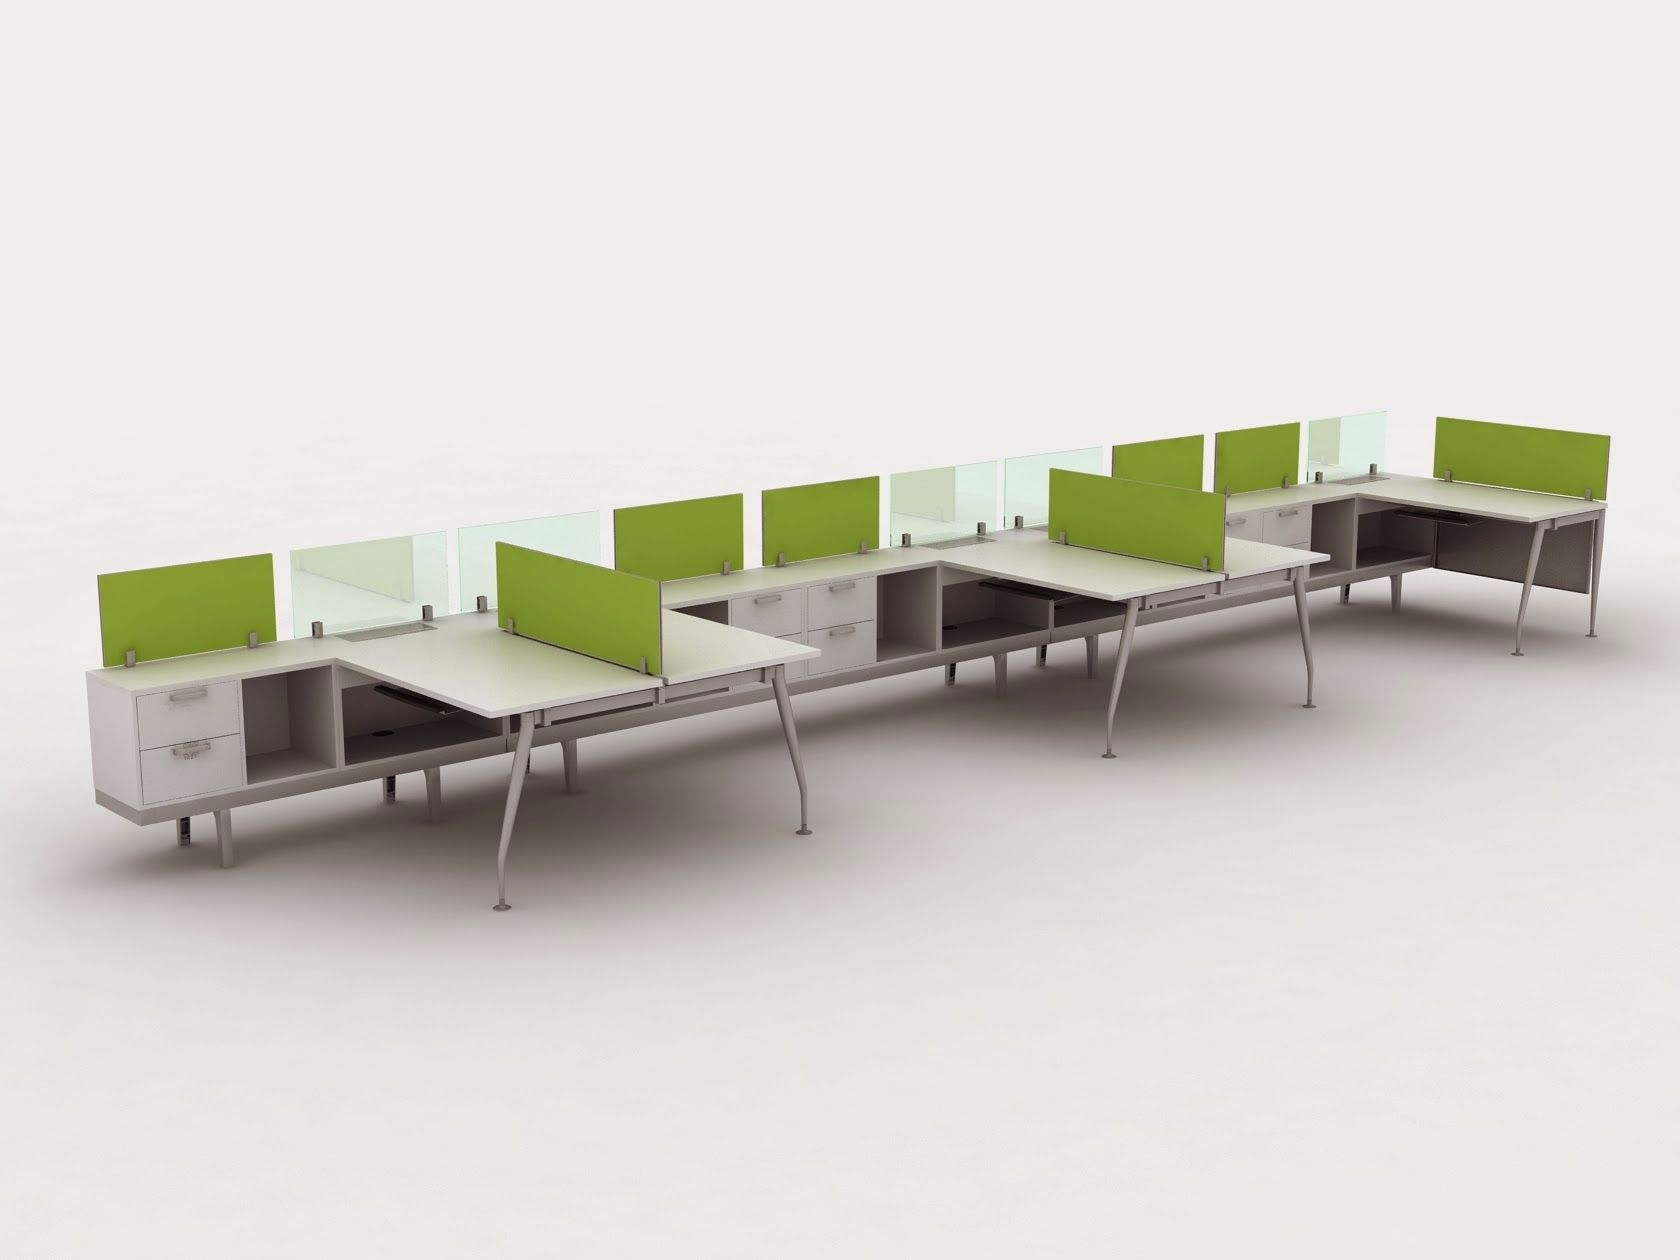 Pin by SAGTCO -Office Furniture & Office Design on Office Furniture ...